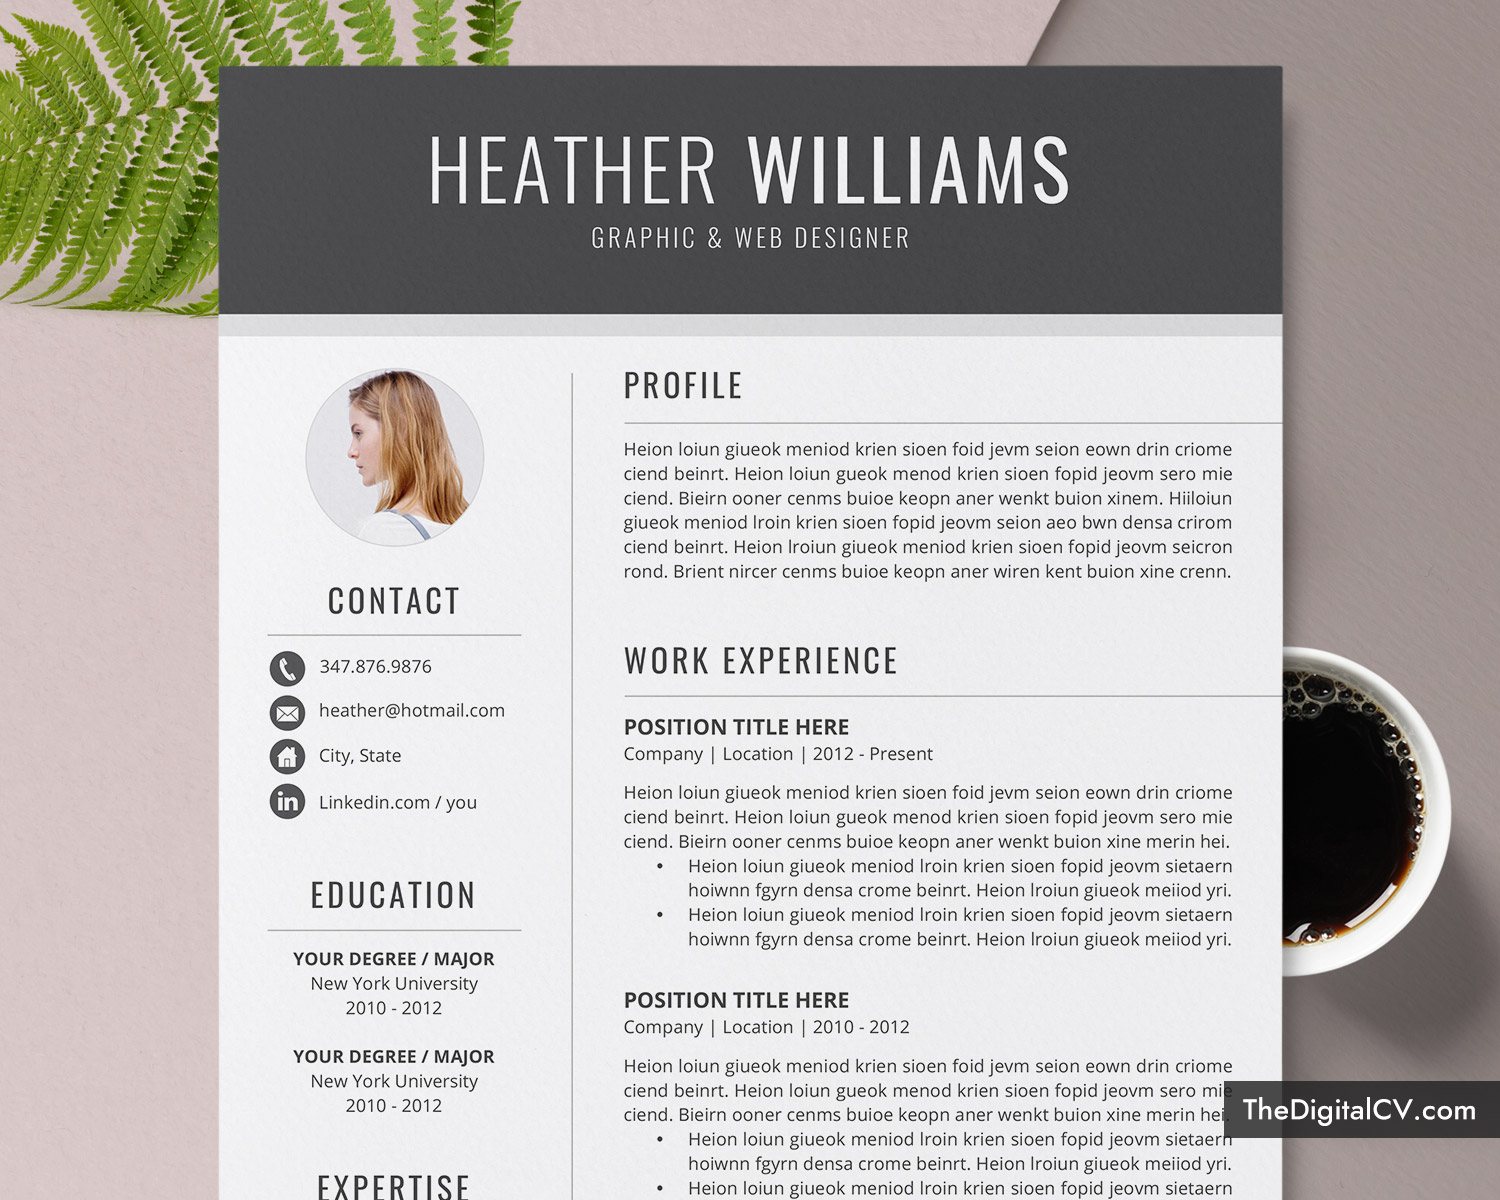 Best Resumes 2020.Thedigitalcv Com 2019 2020 Job Winning Resume Cv